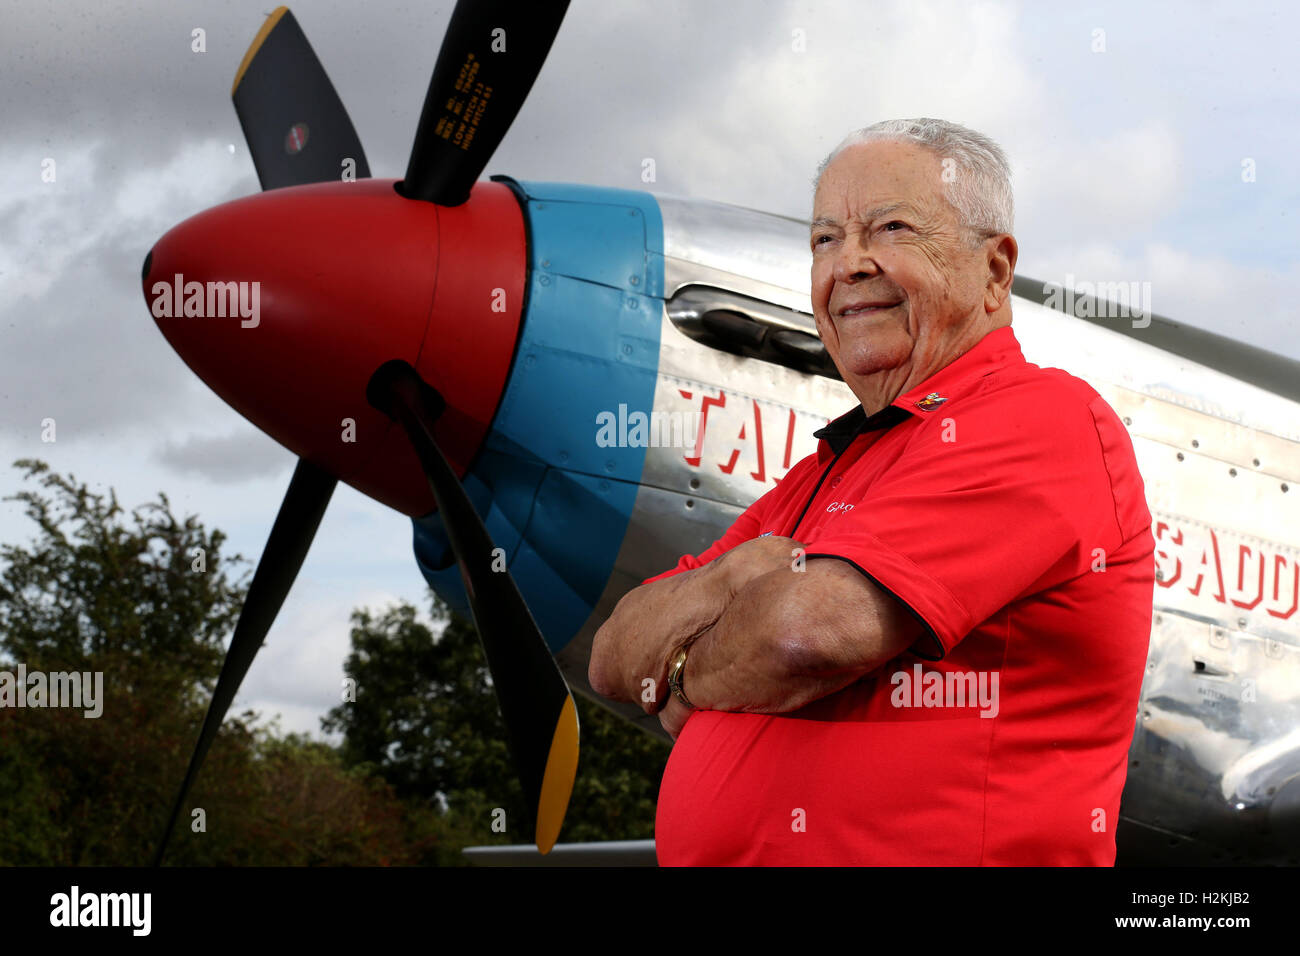 USAF WWII veteran George E Hardy, 91, is reunited with the USAF Mustang fighter plane that he flew during World - Stock Image